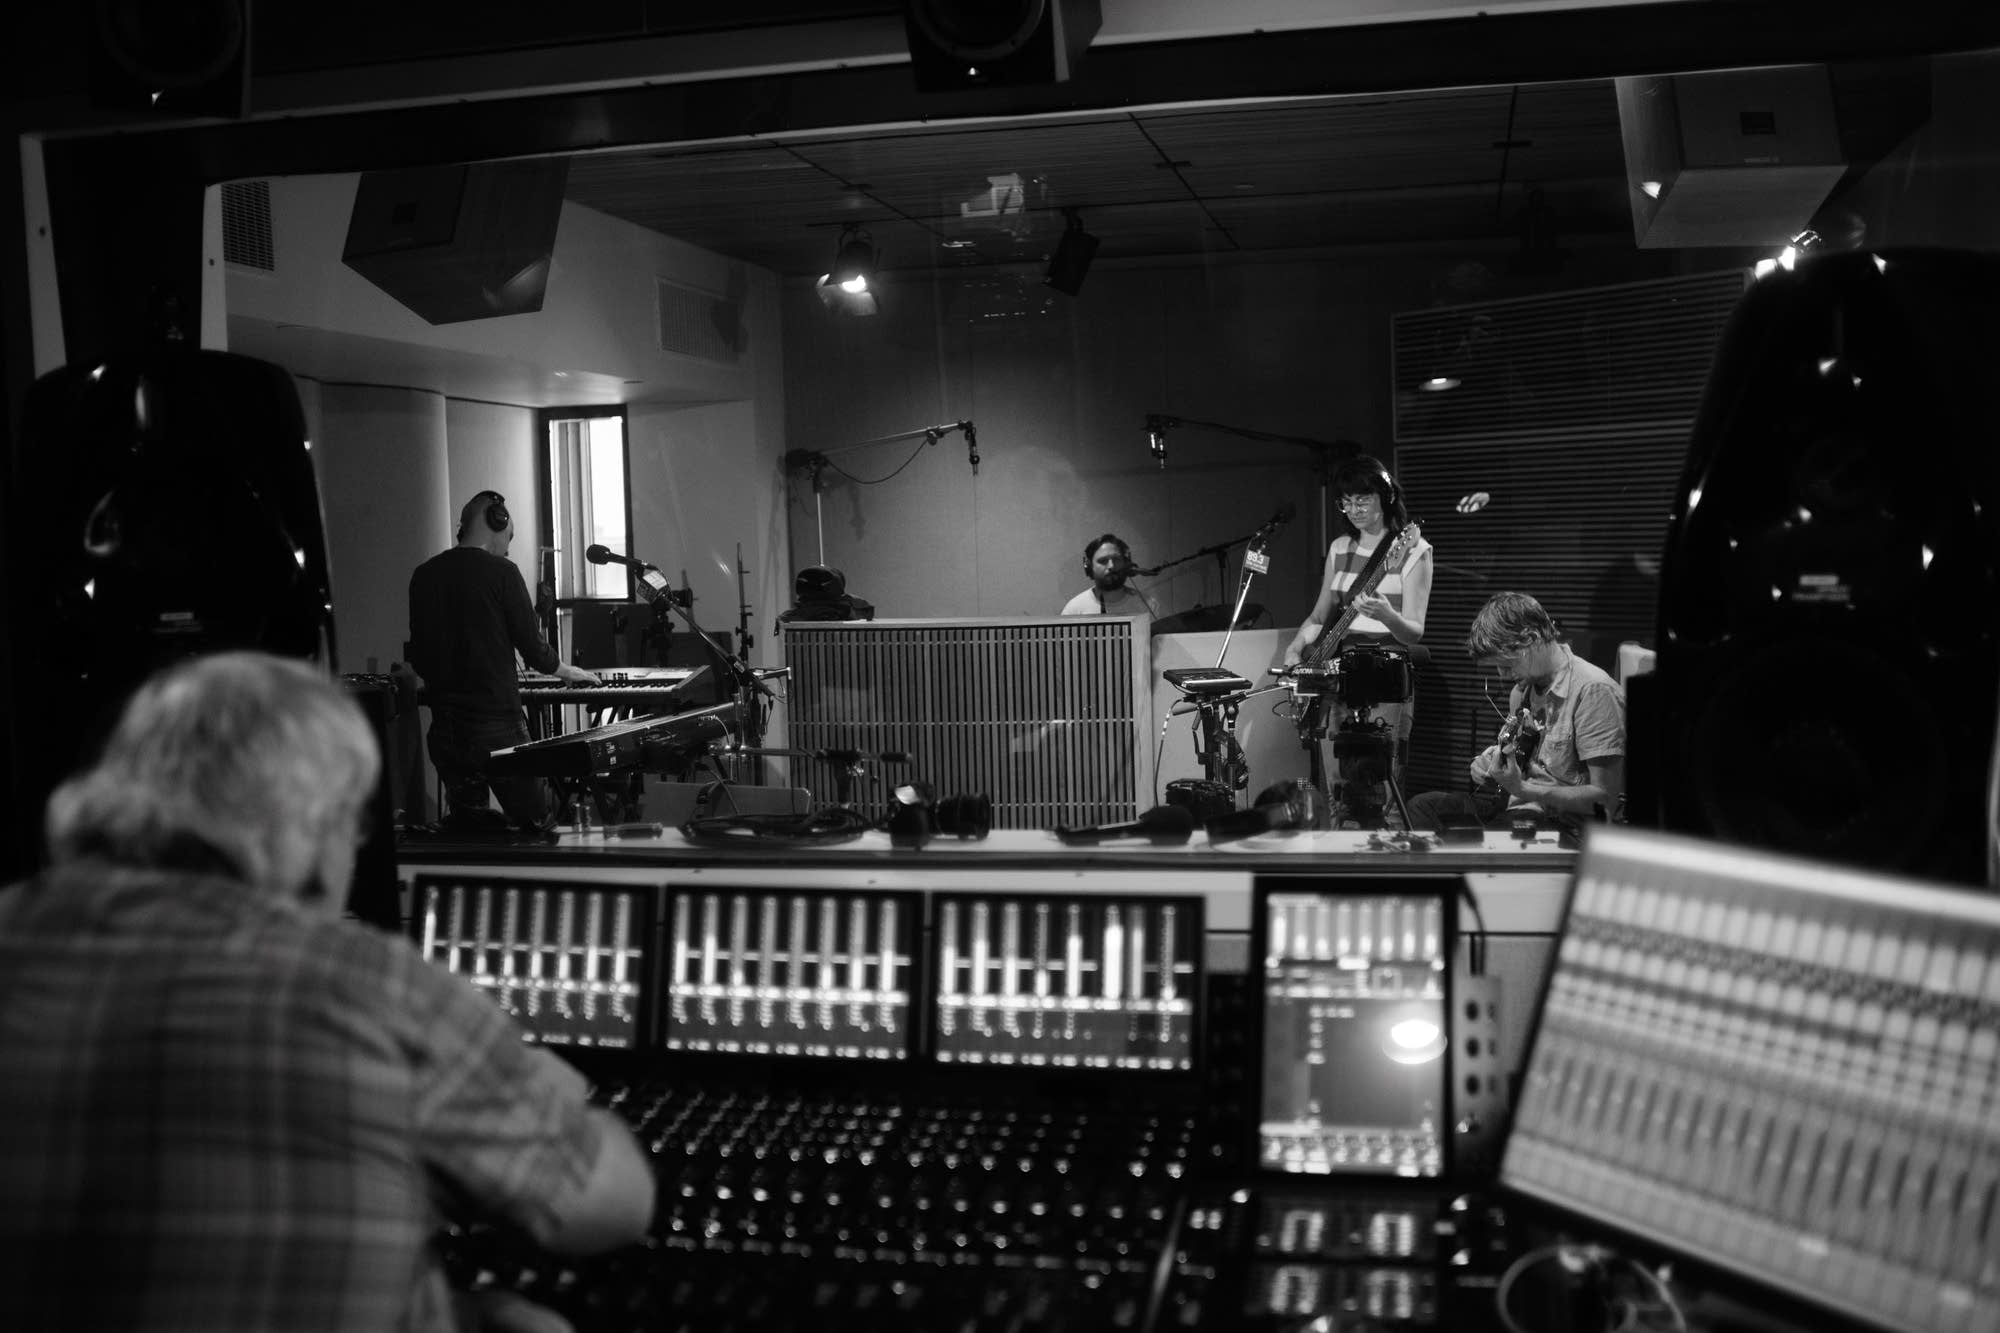 Stephen Malkmus and the Jicks perform in The Current studio